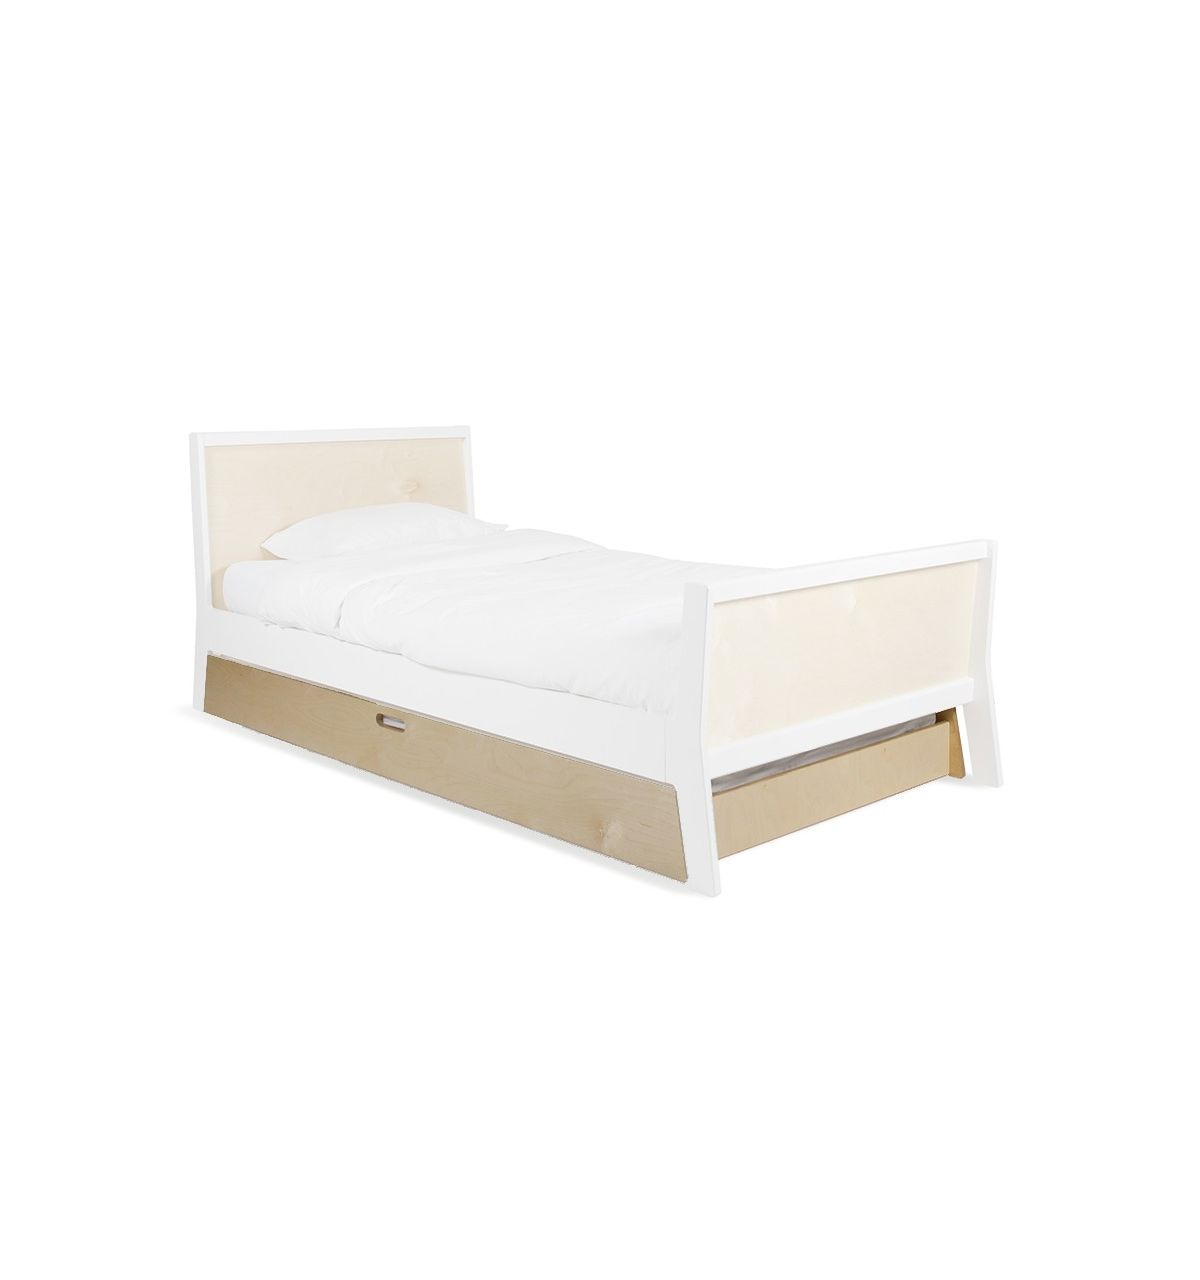 Oeuf Trundle For Sparrow Twin Bed